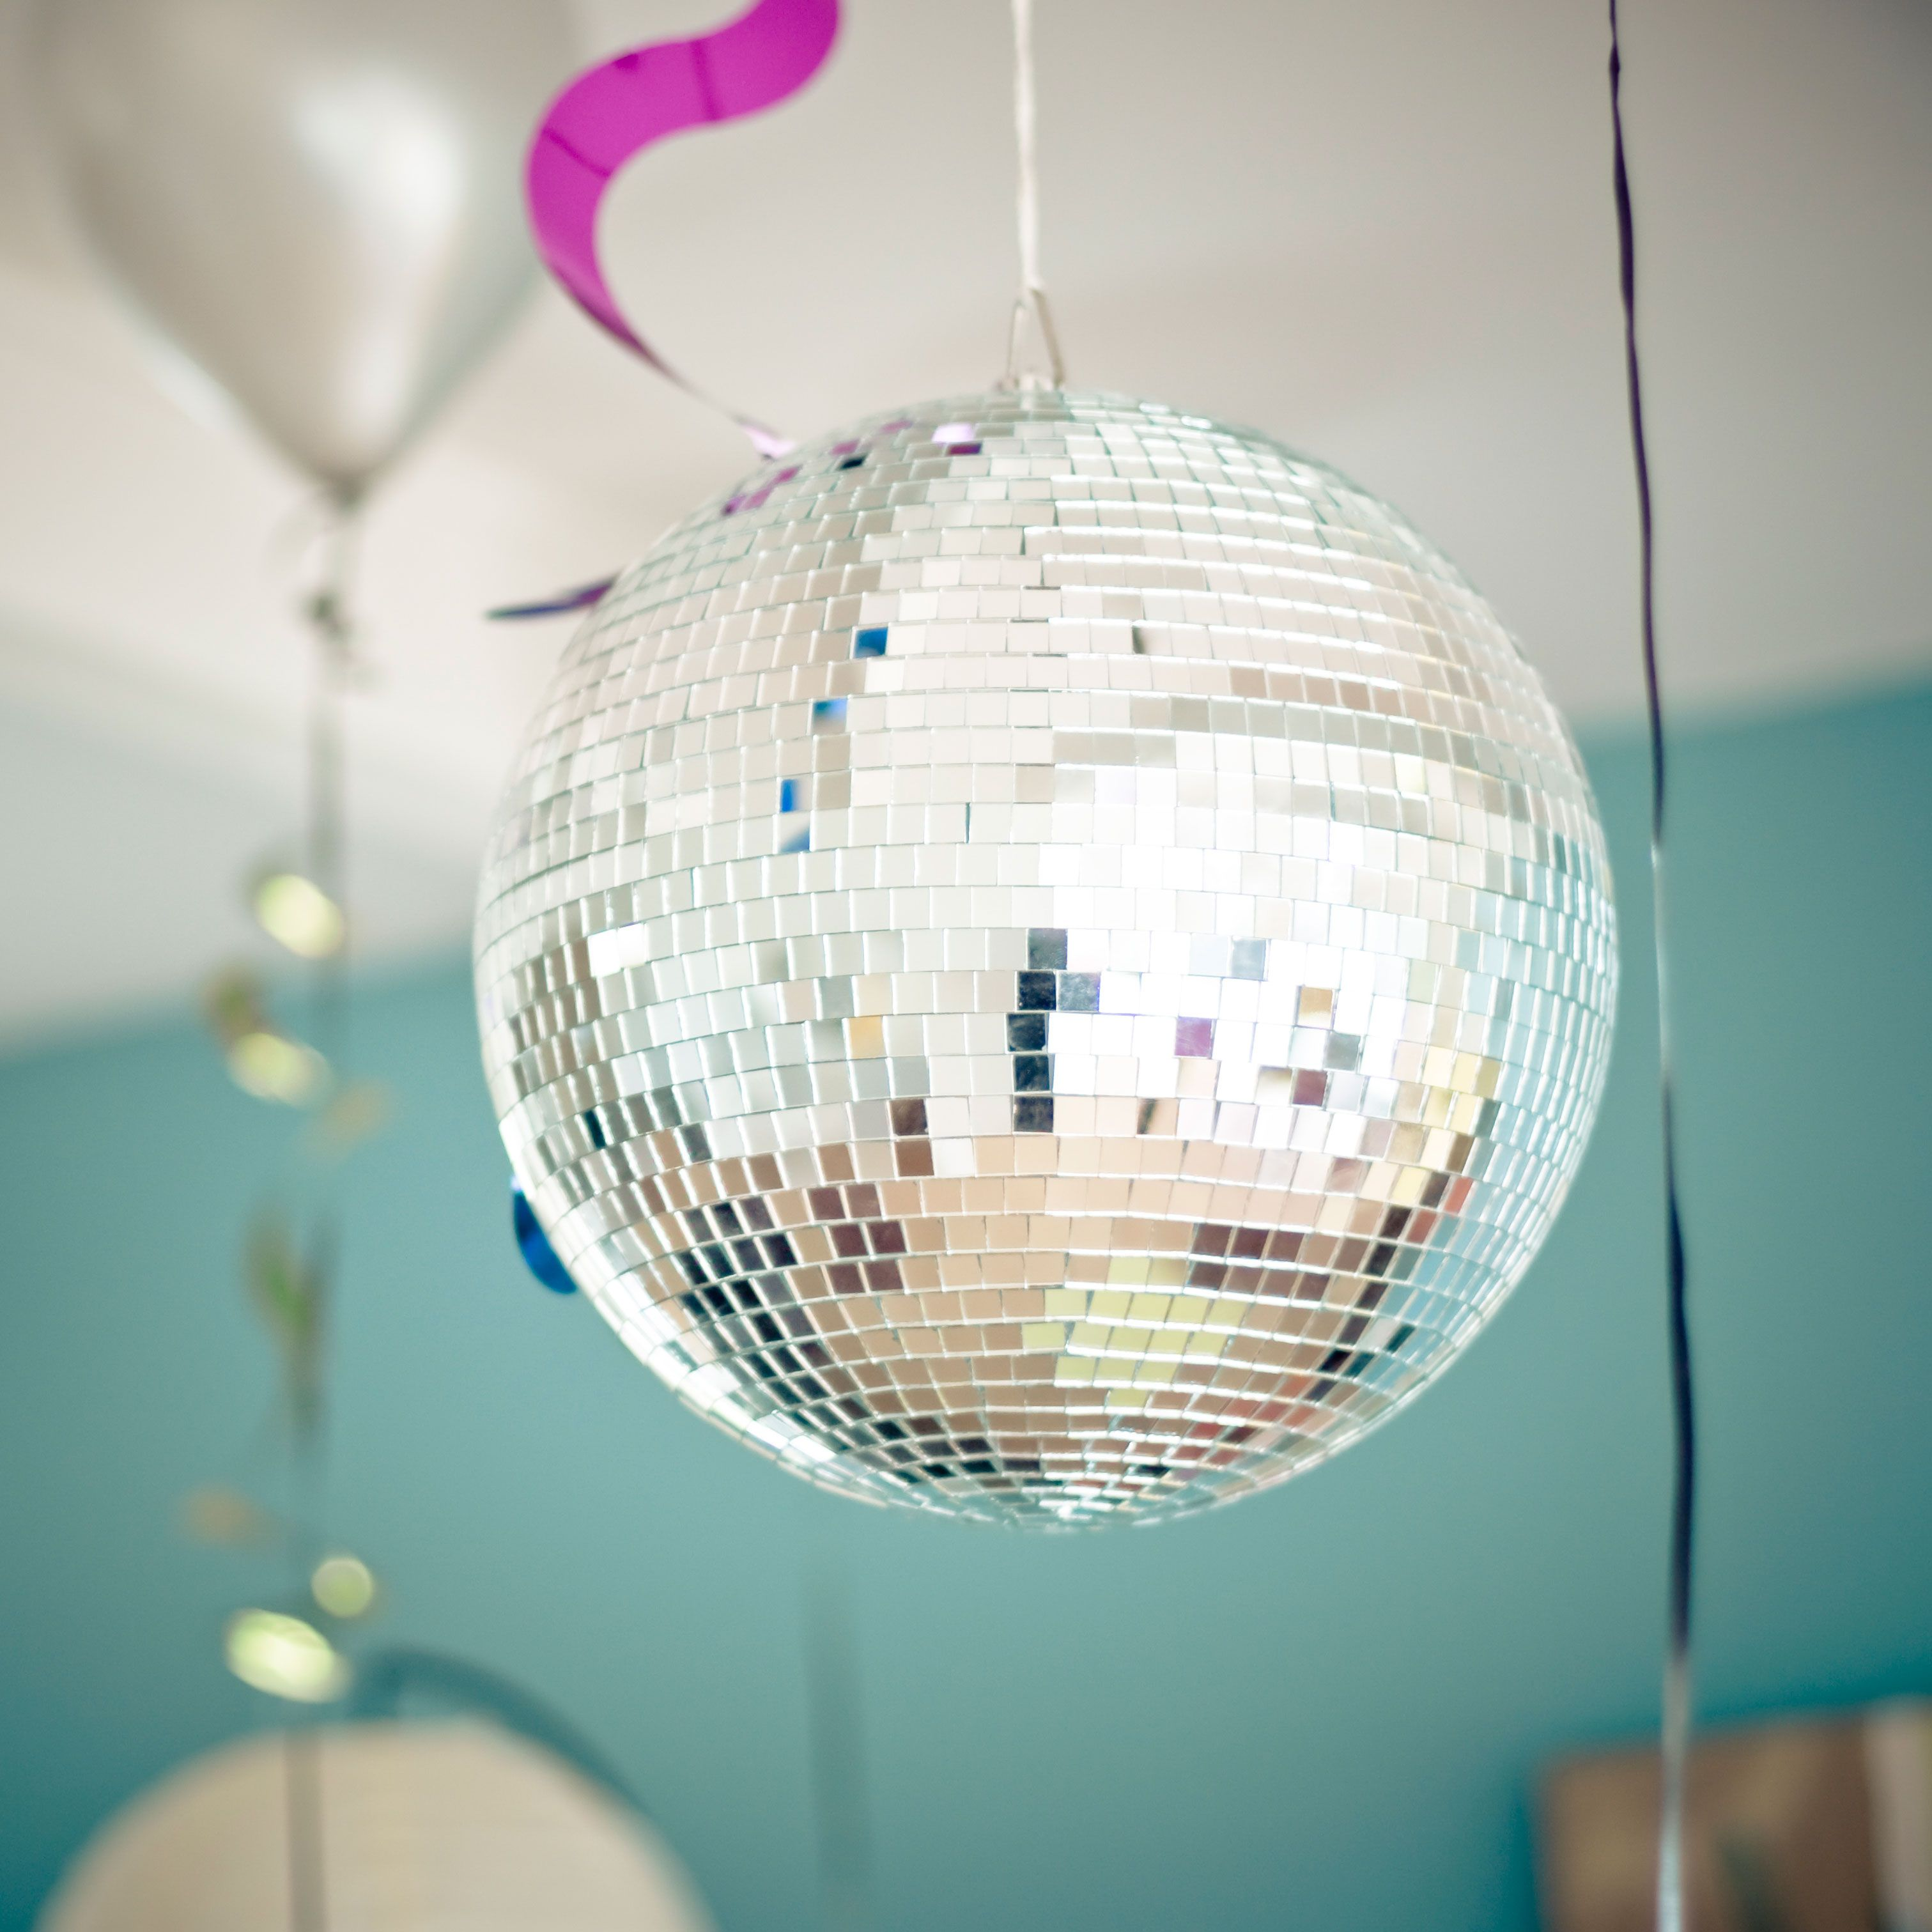 36 Fun Party Ideas for Adults - Adult Party Themes Worthy of Instagram